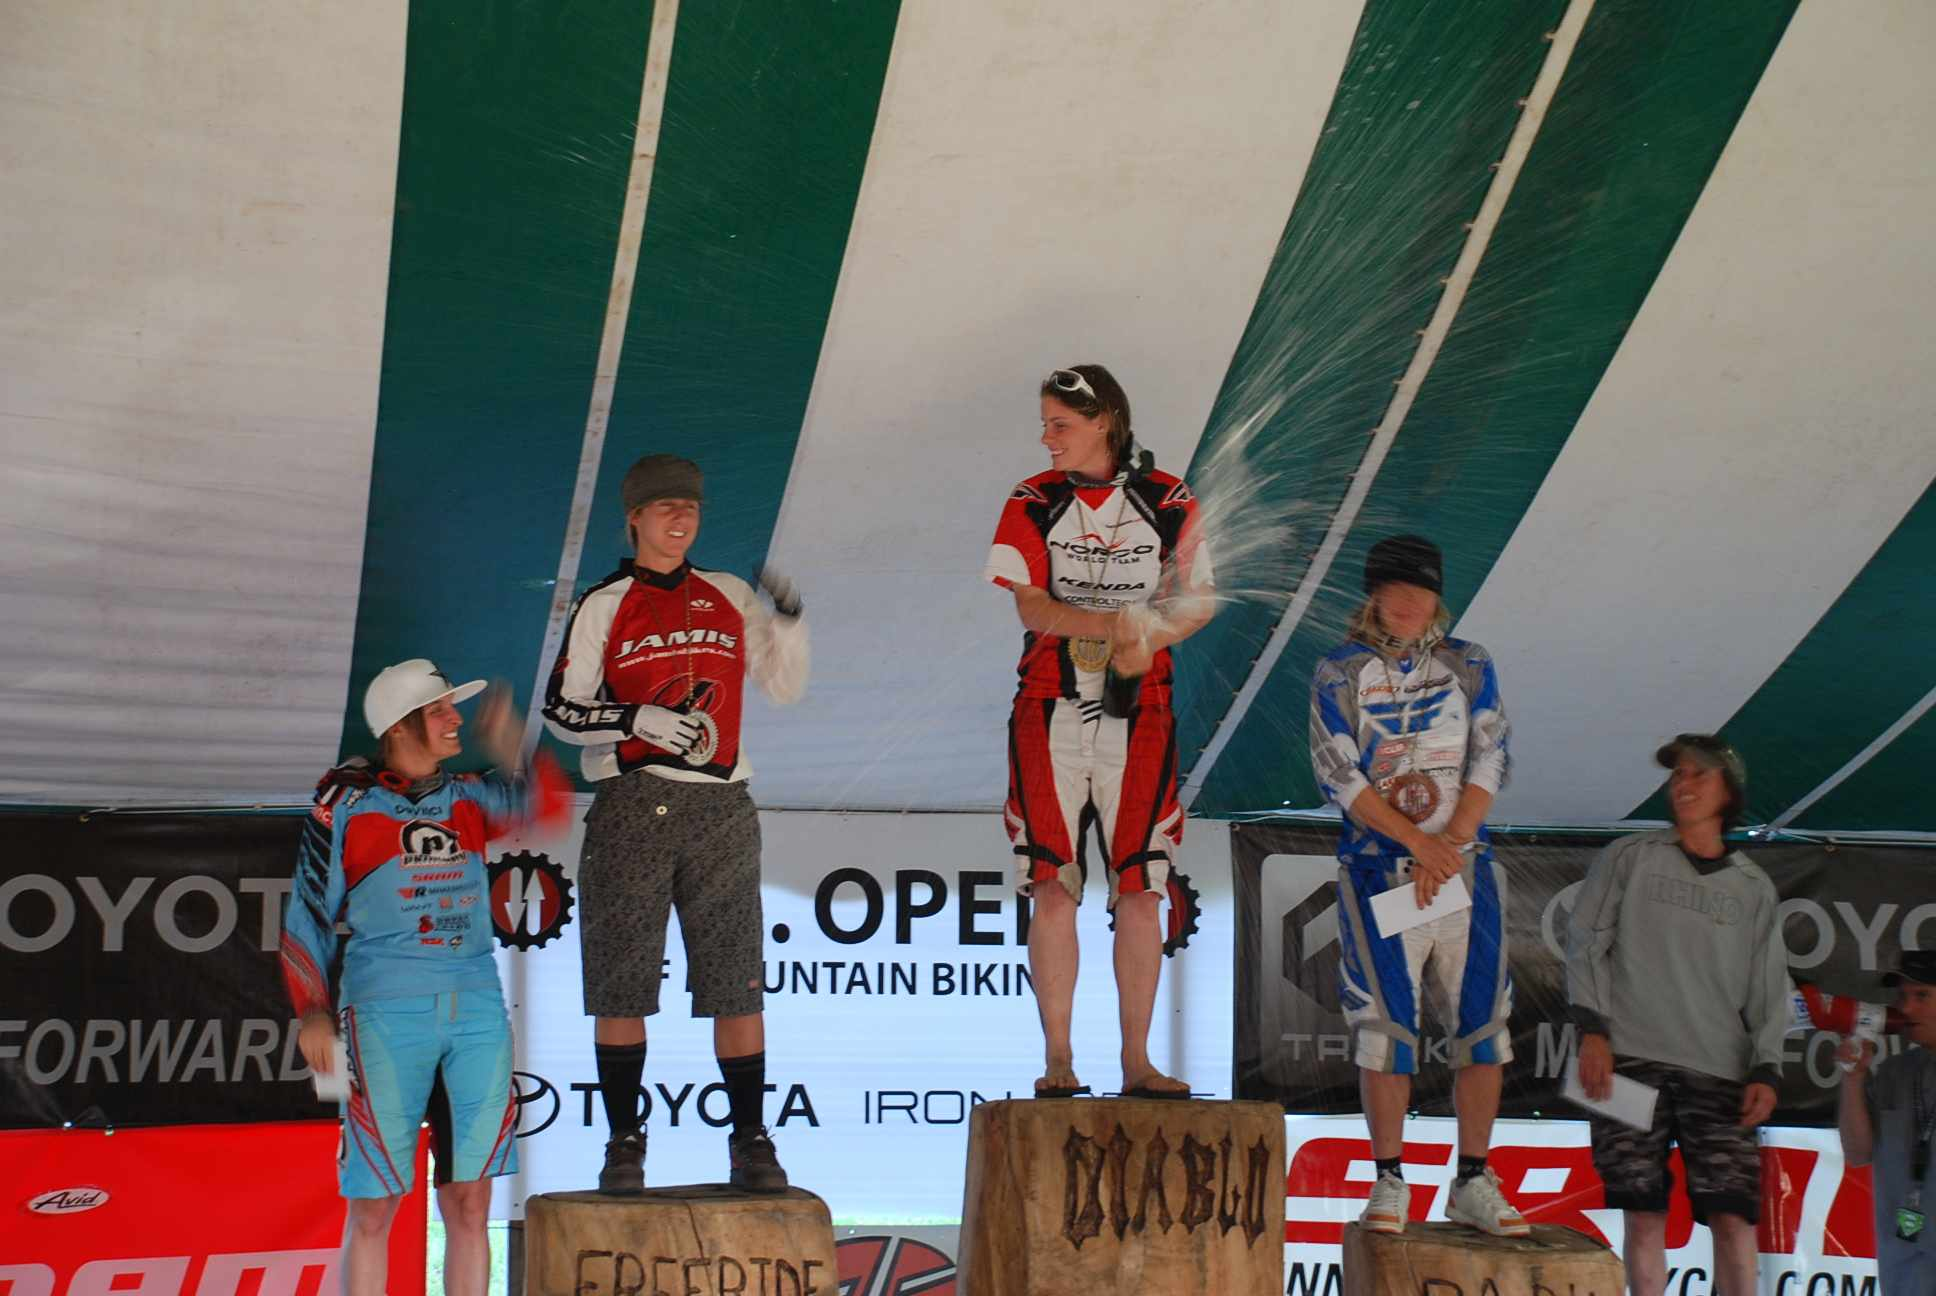 Fionn Griffiths on the podium, flanked by Kathy Pruitt and Jo Petterson